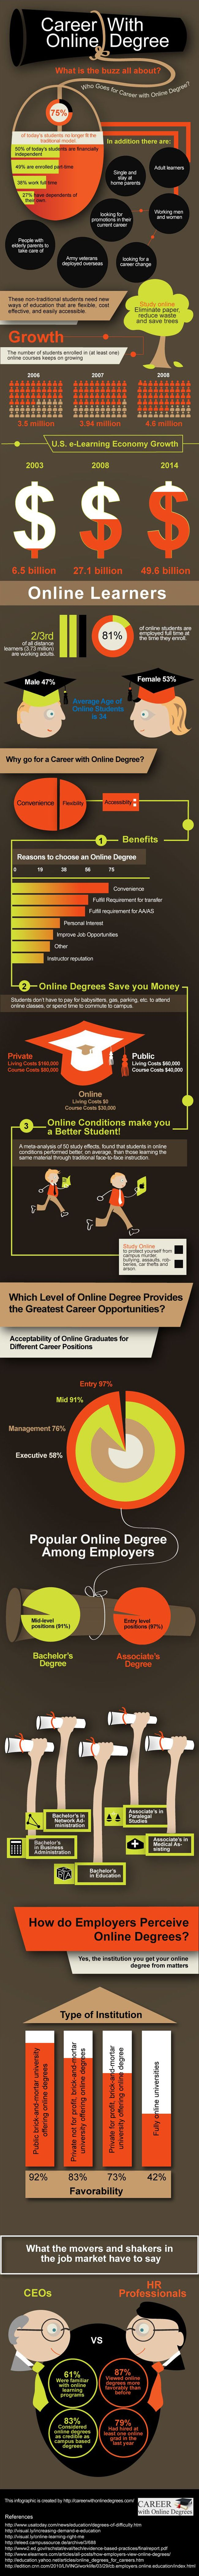 An interesting infographic about starting your career with an online degree... http://careerwithonlinedegrees.com/infographic-career-with-online-degree/